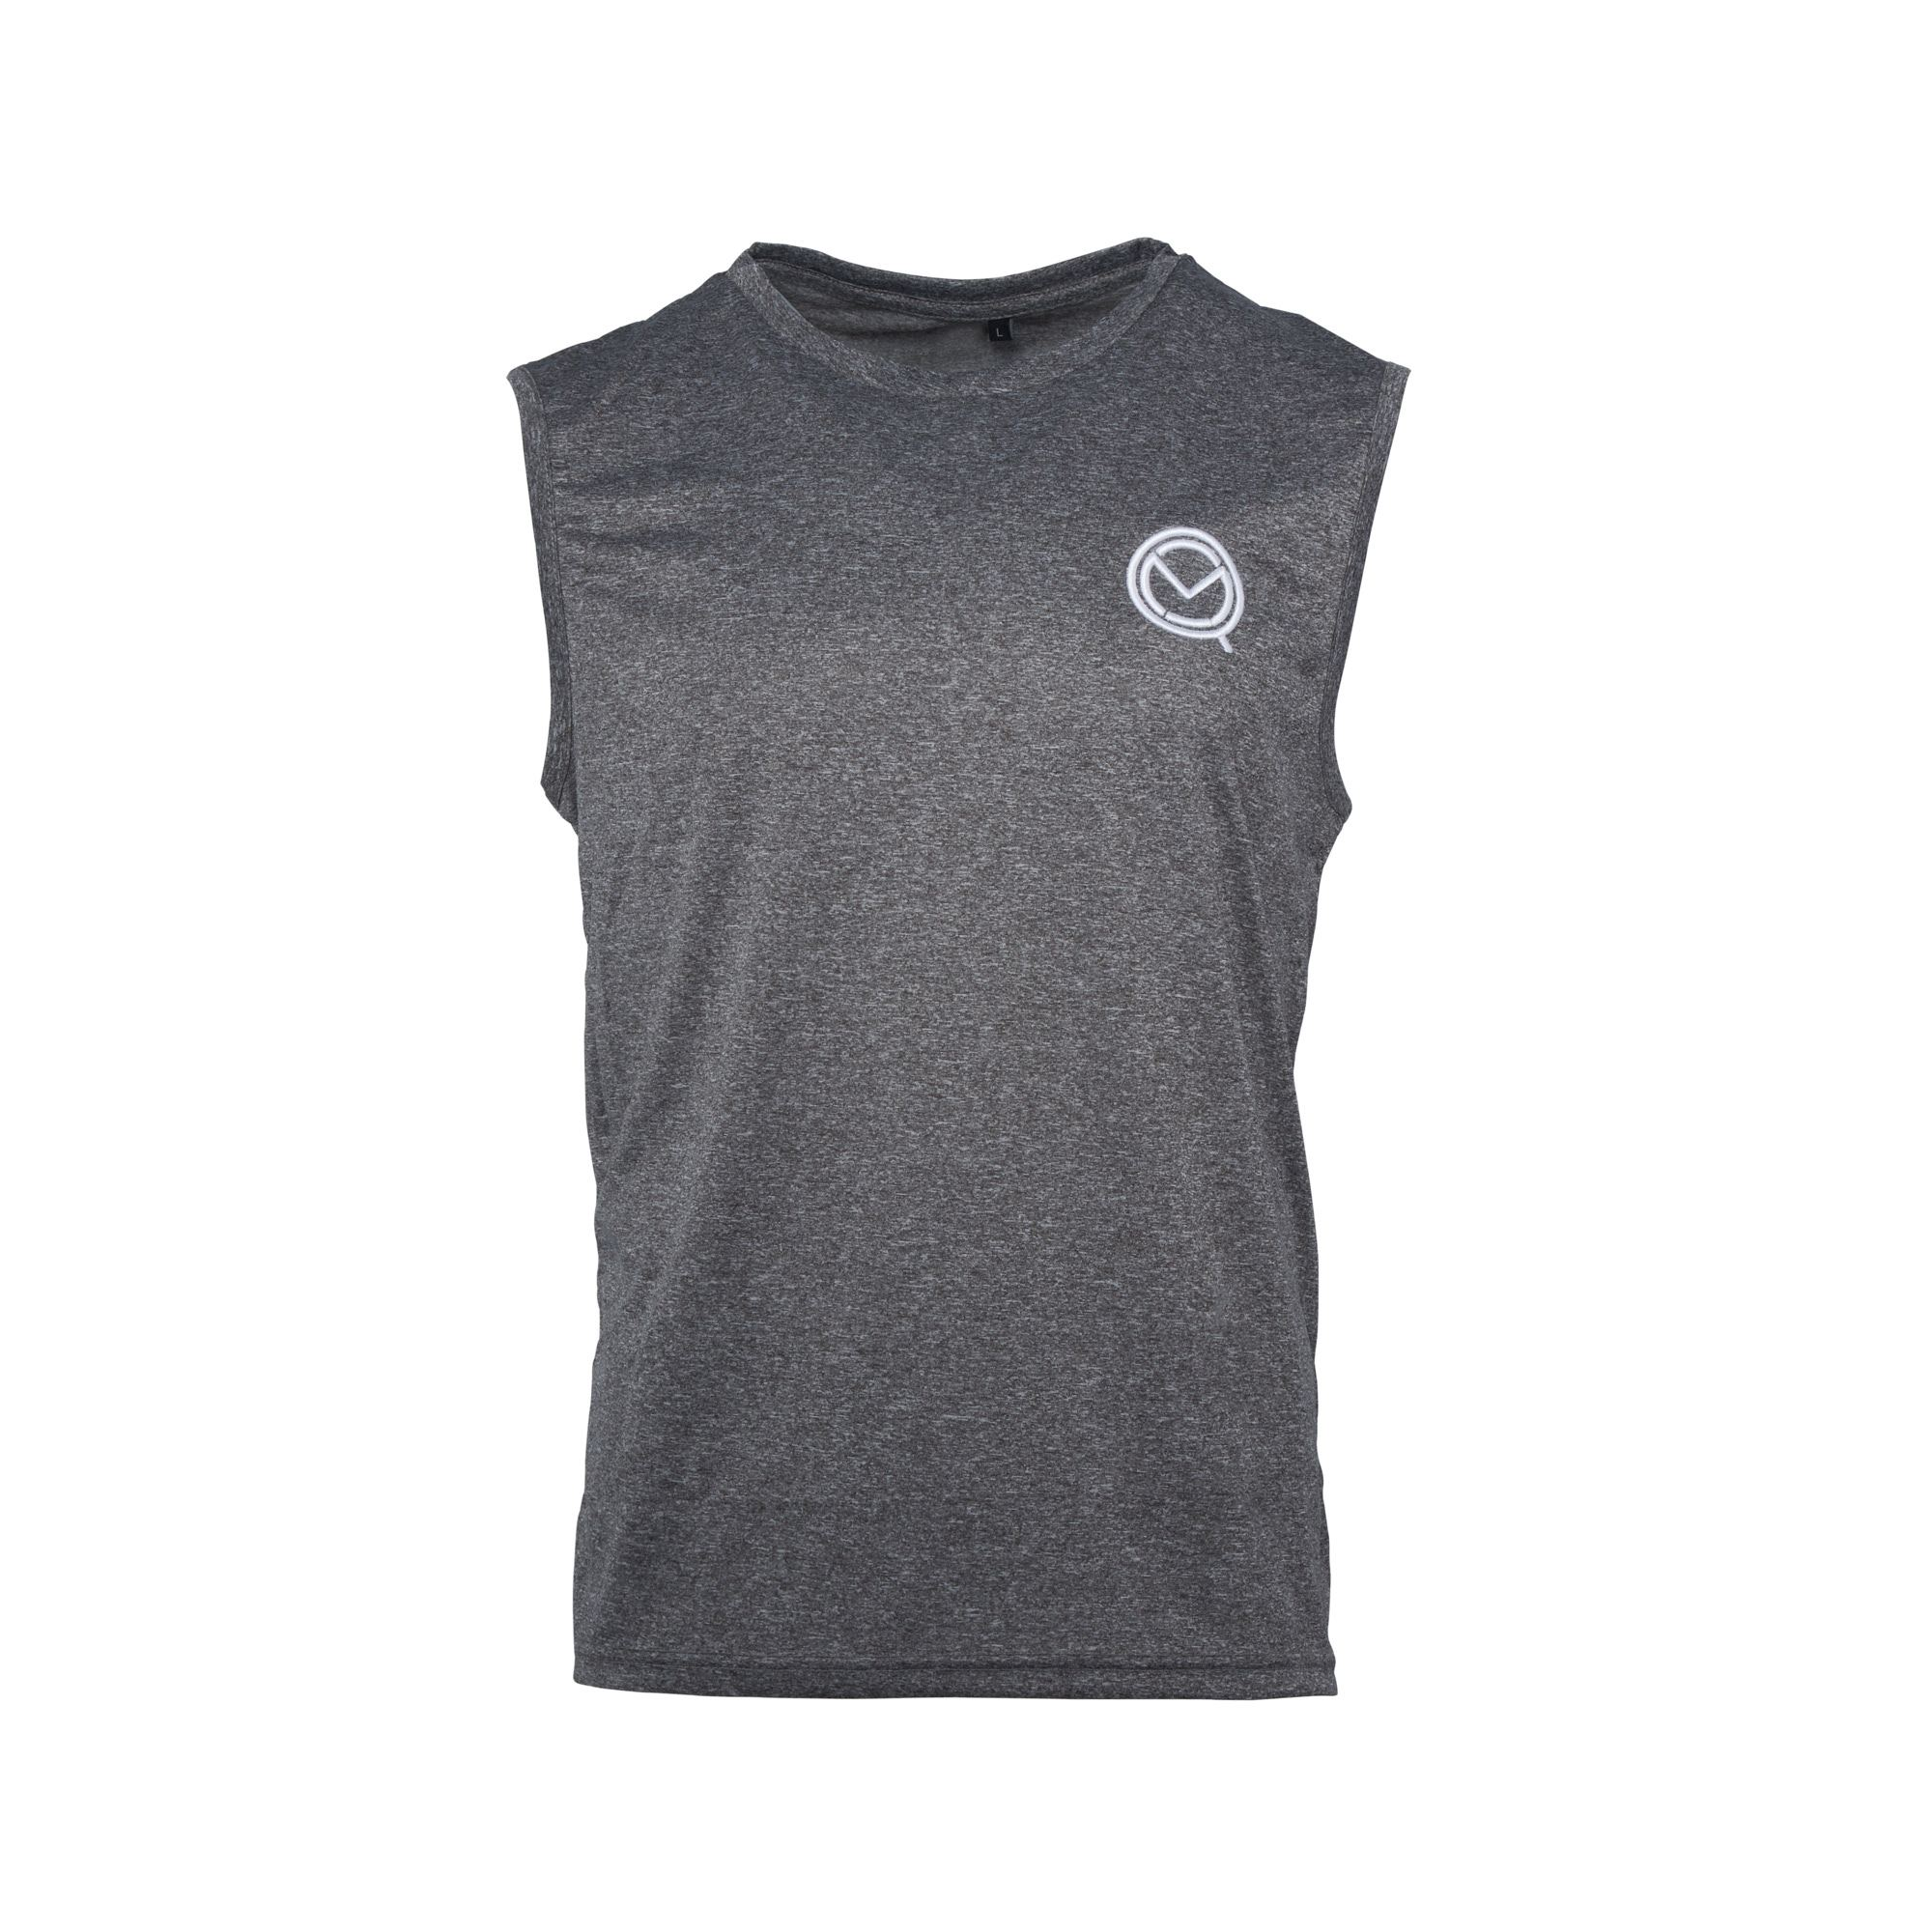 Grey FIGHT LIFE Tank Top - MOQ boxing